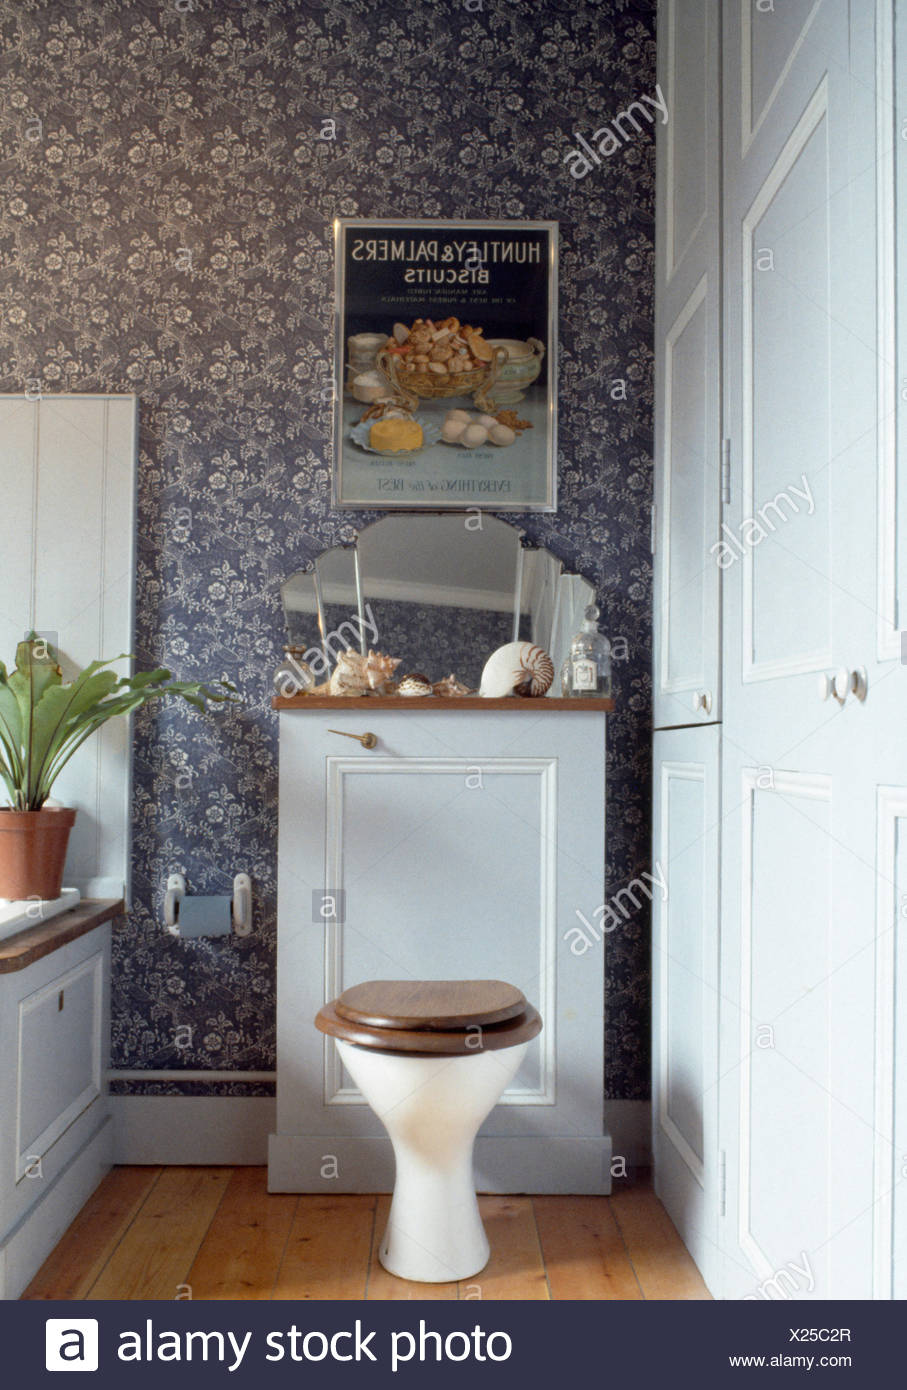 Toilet in seventies bathroom with blue wallpaper - Stock Image